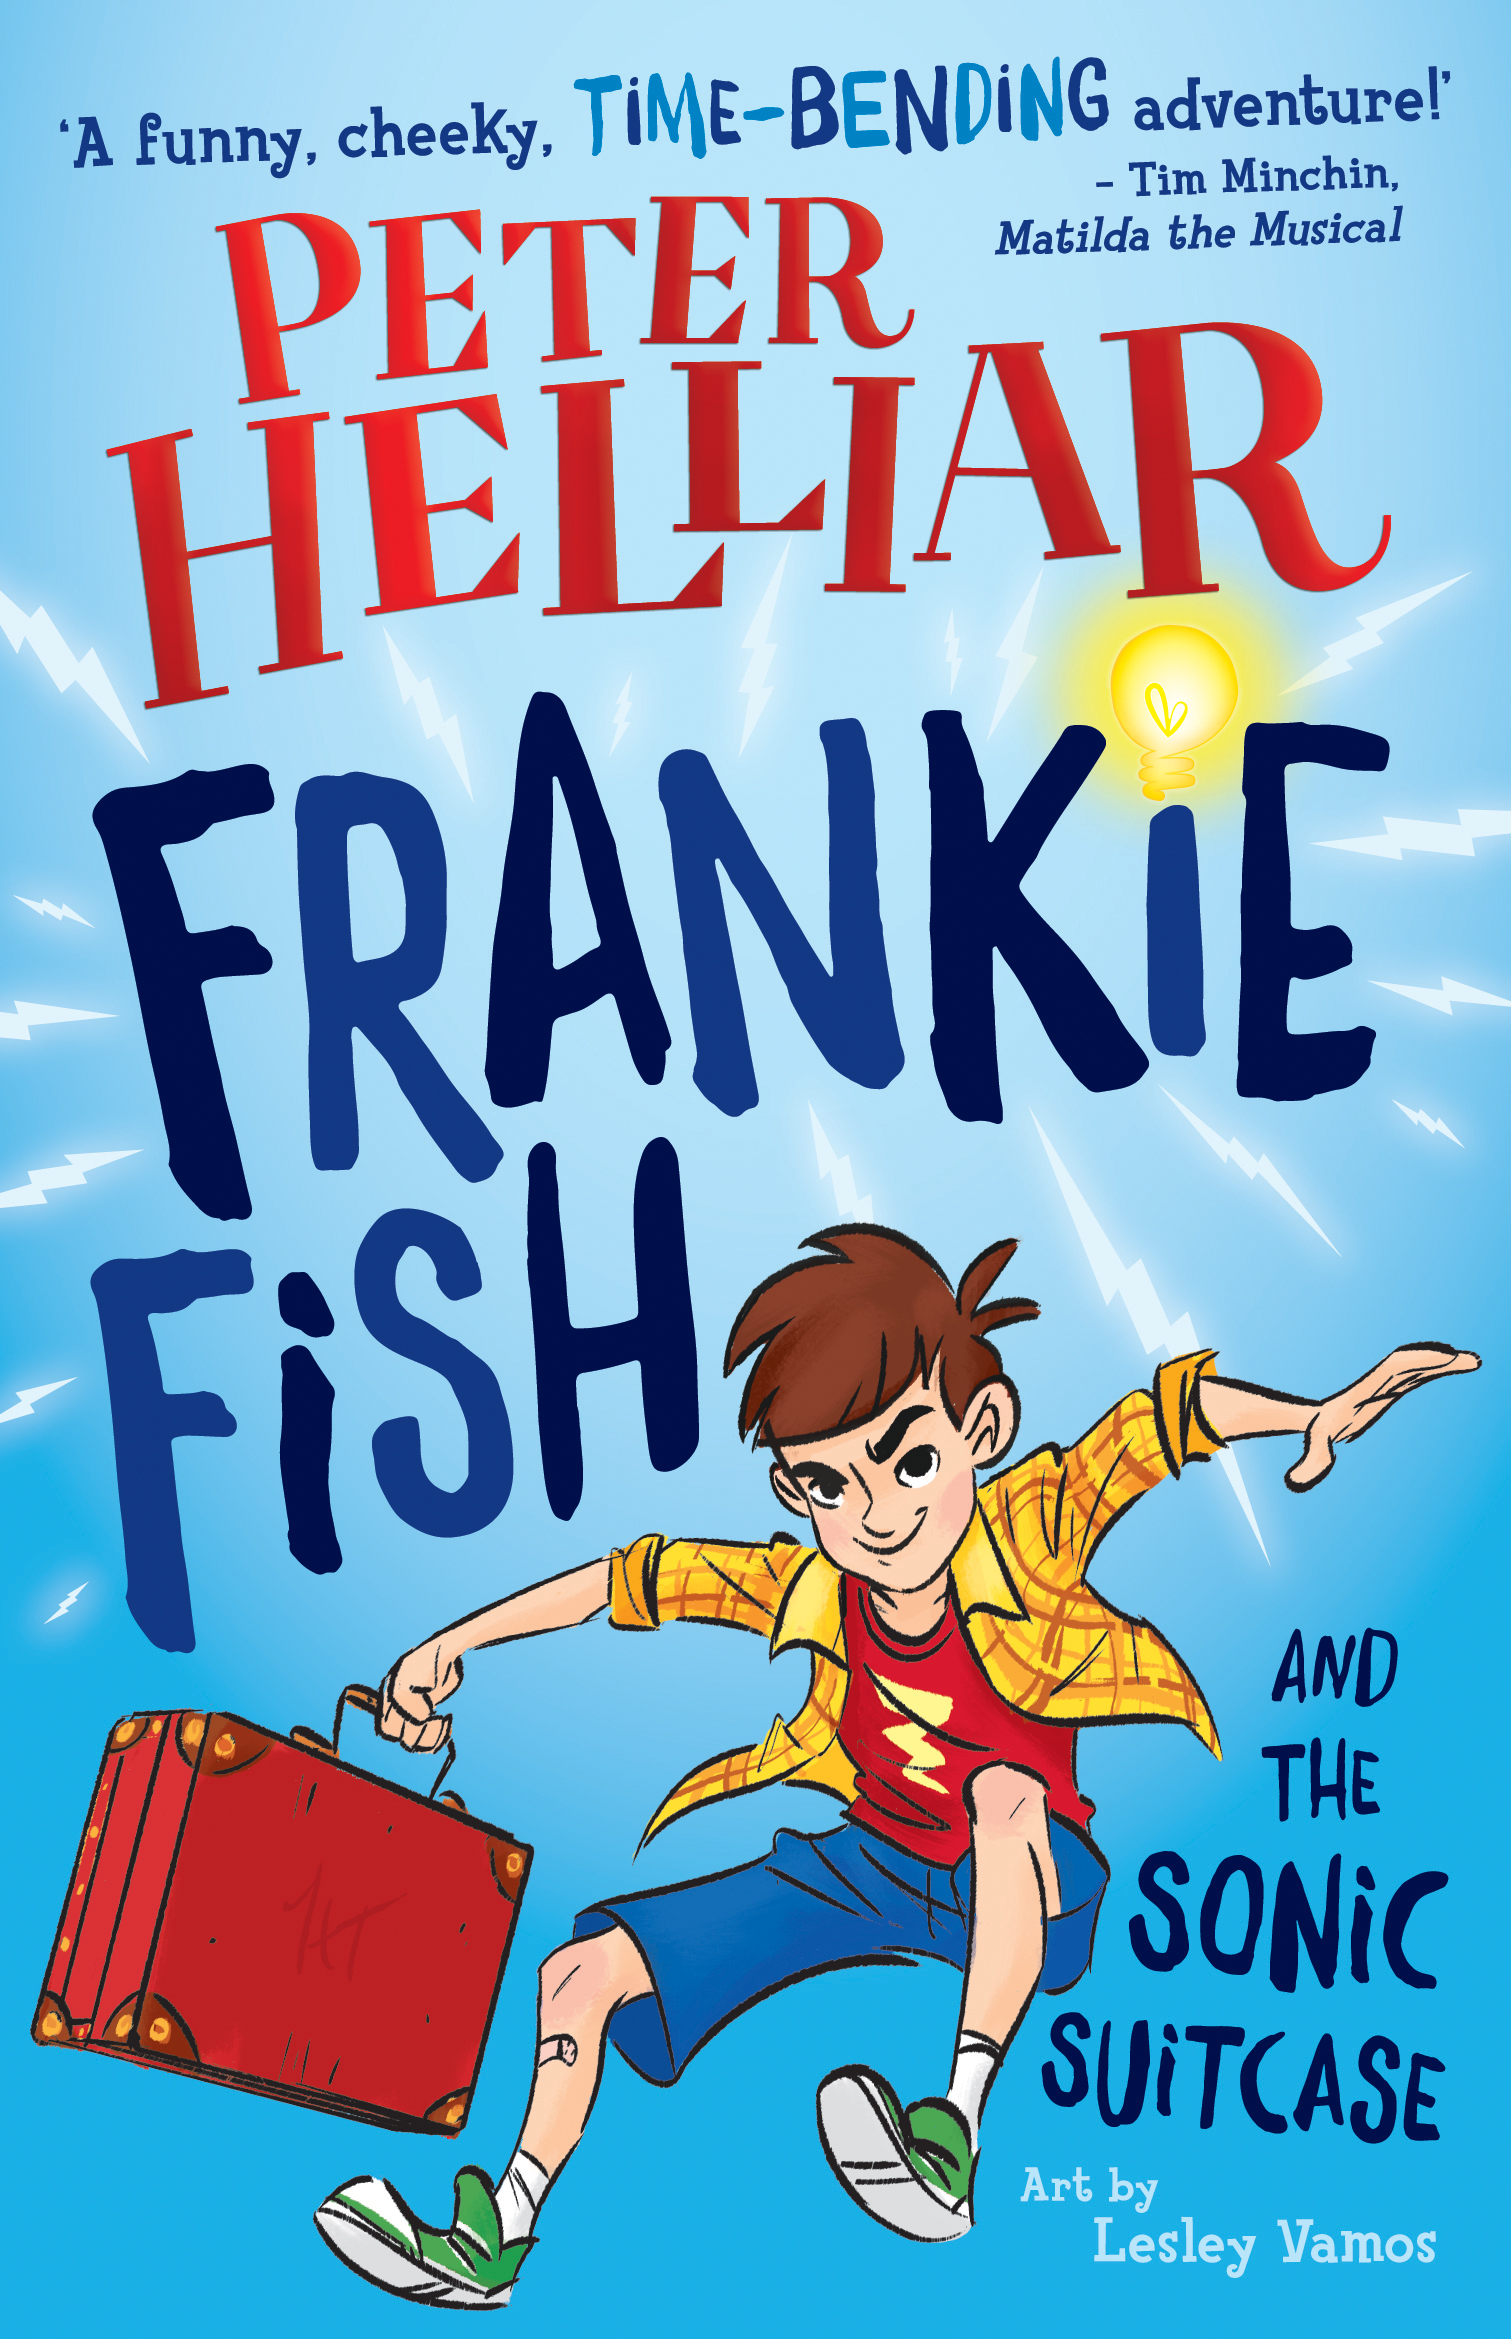 WIN 1 of 5 copies of Frankie Fish and the Sonic Suitcase.